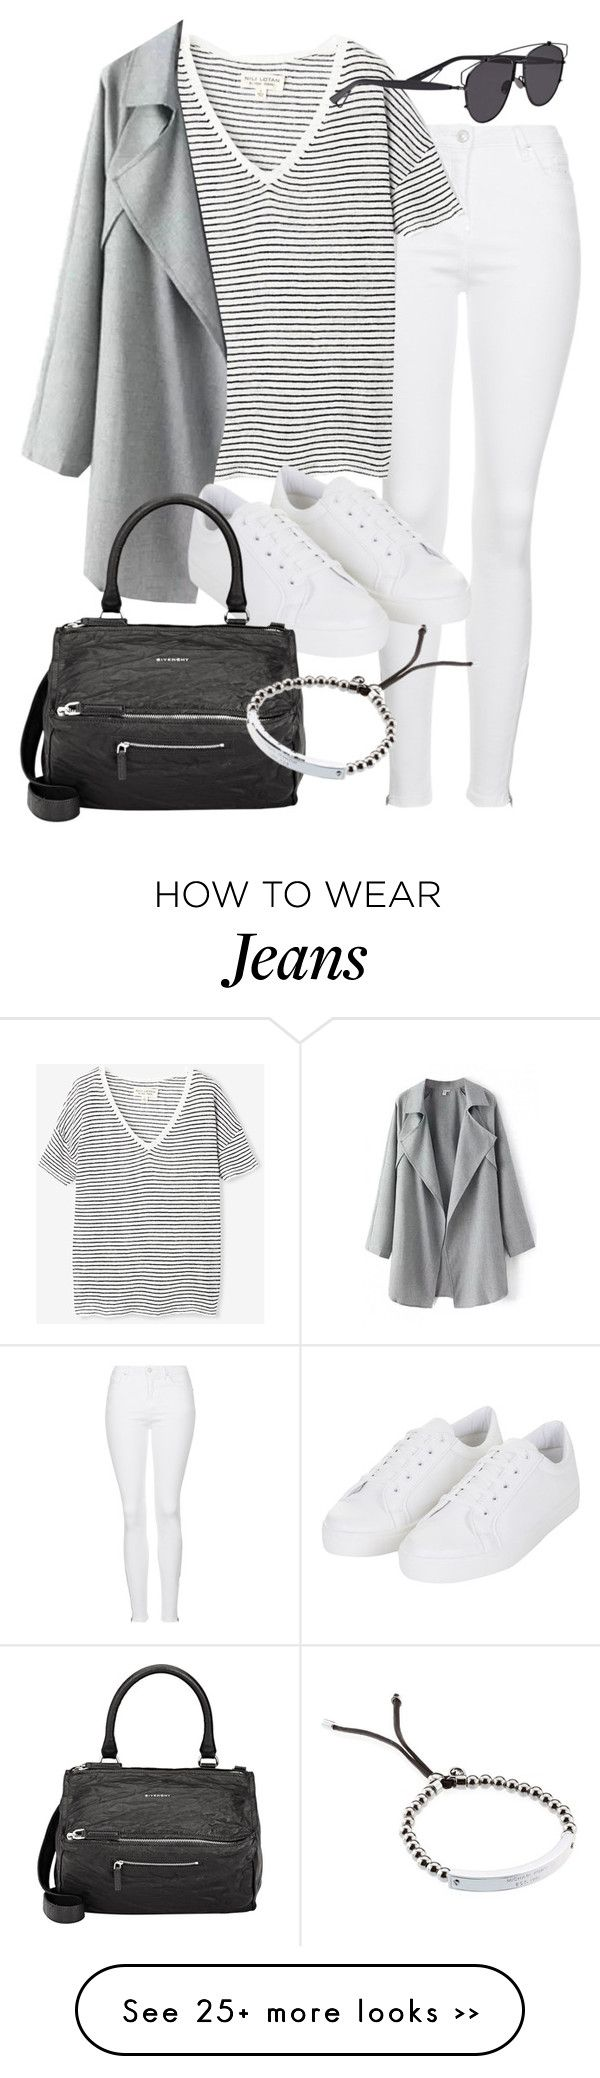 """""""Untitled #18903"""" by florencia95 on Polyvore featuring Topshop, Nili Lotan, Givenchy, Christian Dior and Michael Kors"""